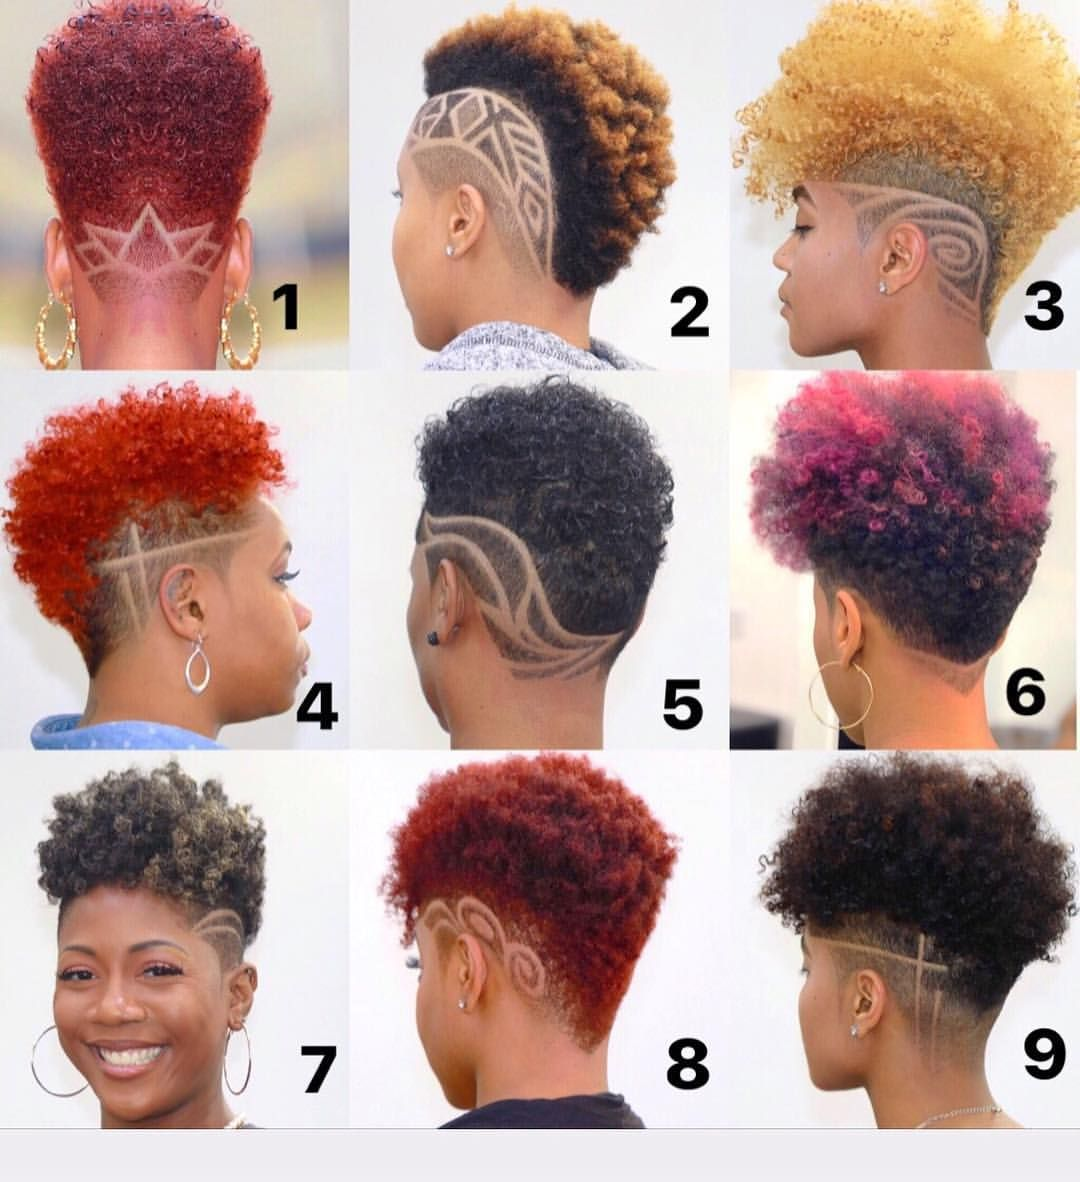 🌺💈🌺~ Curls | Fades | Natural | Designs | Haircuts | Hairstyles | All  leads to Stylish Beauty ~… | Short hair designs, Natural hair styles,  Shaved side hairstyles